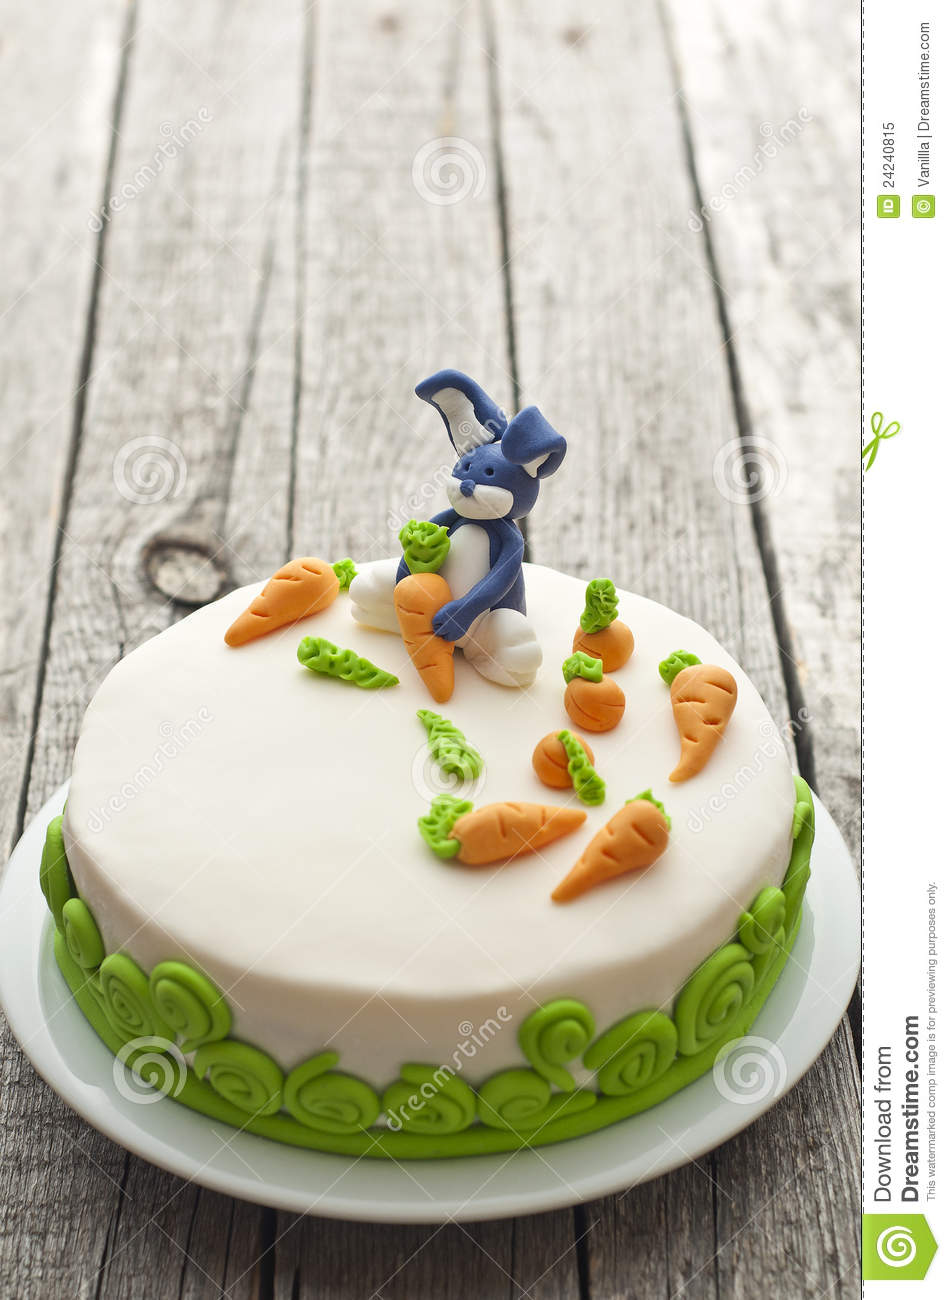 Homemade Cake Decoration Images : Homemade Carrot Cake With Rabbit Decoration Royalty Free ...